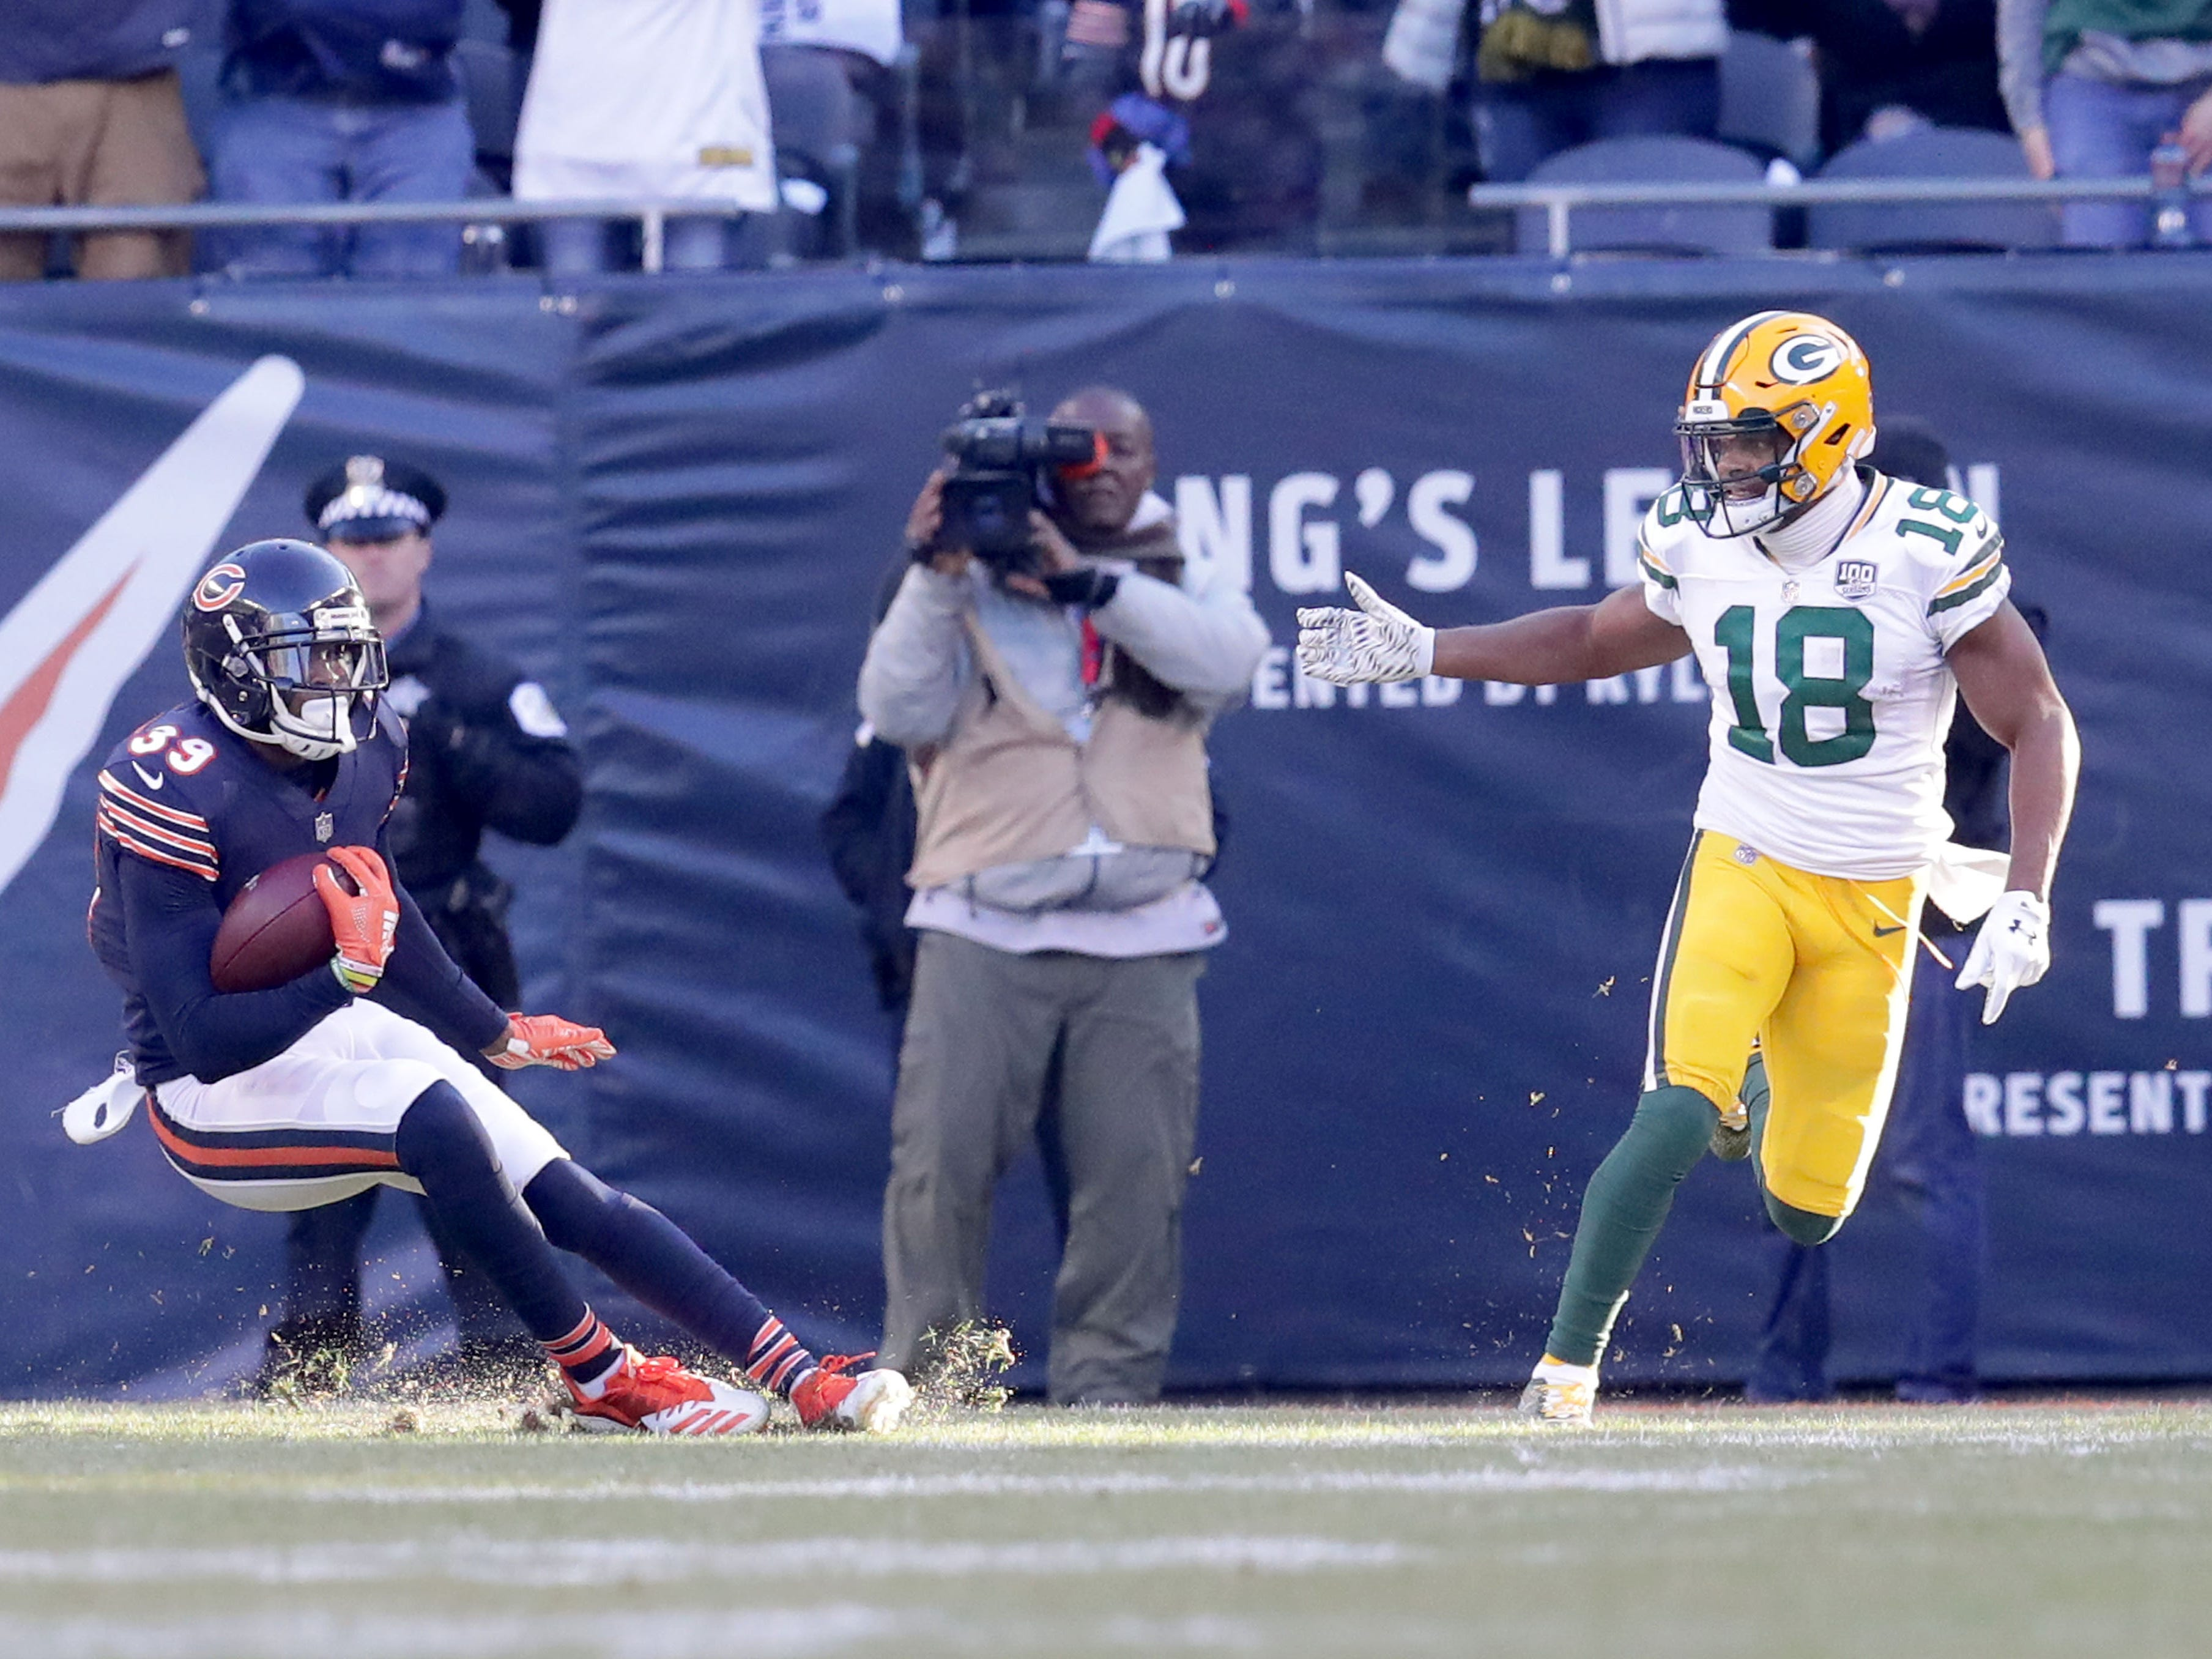 Chicago Bears' Eddie Jackson slides on the turf after and interception of Aaron Rodgers pass during the 2nd half of the Green Bay Packers 24-17 loss to the Chicago Bears at Soldier Field Sunday, Dec. 16, 2018, in Chicago. Photo by Mike De Sisti / The Milwaukee Journal Sentinel